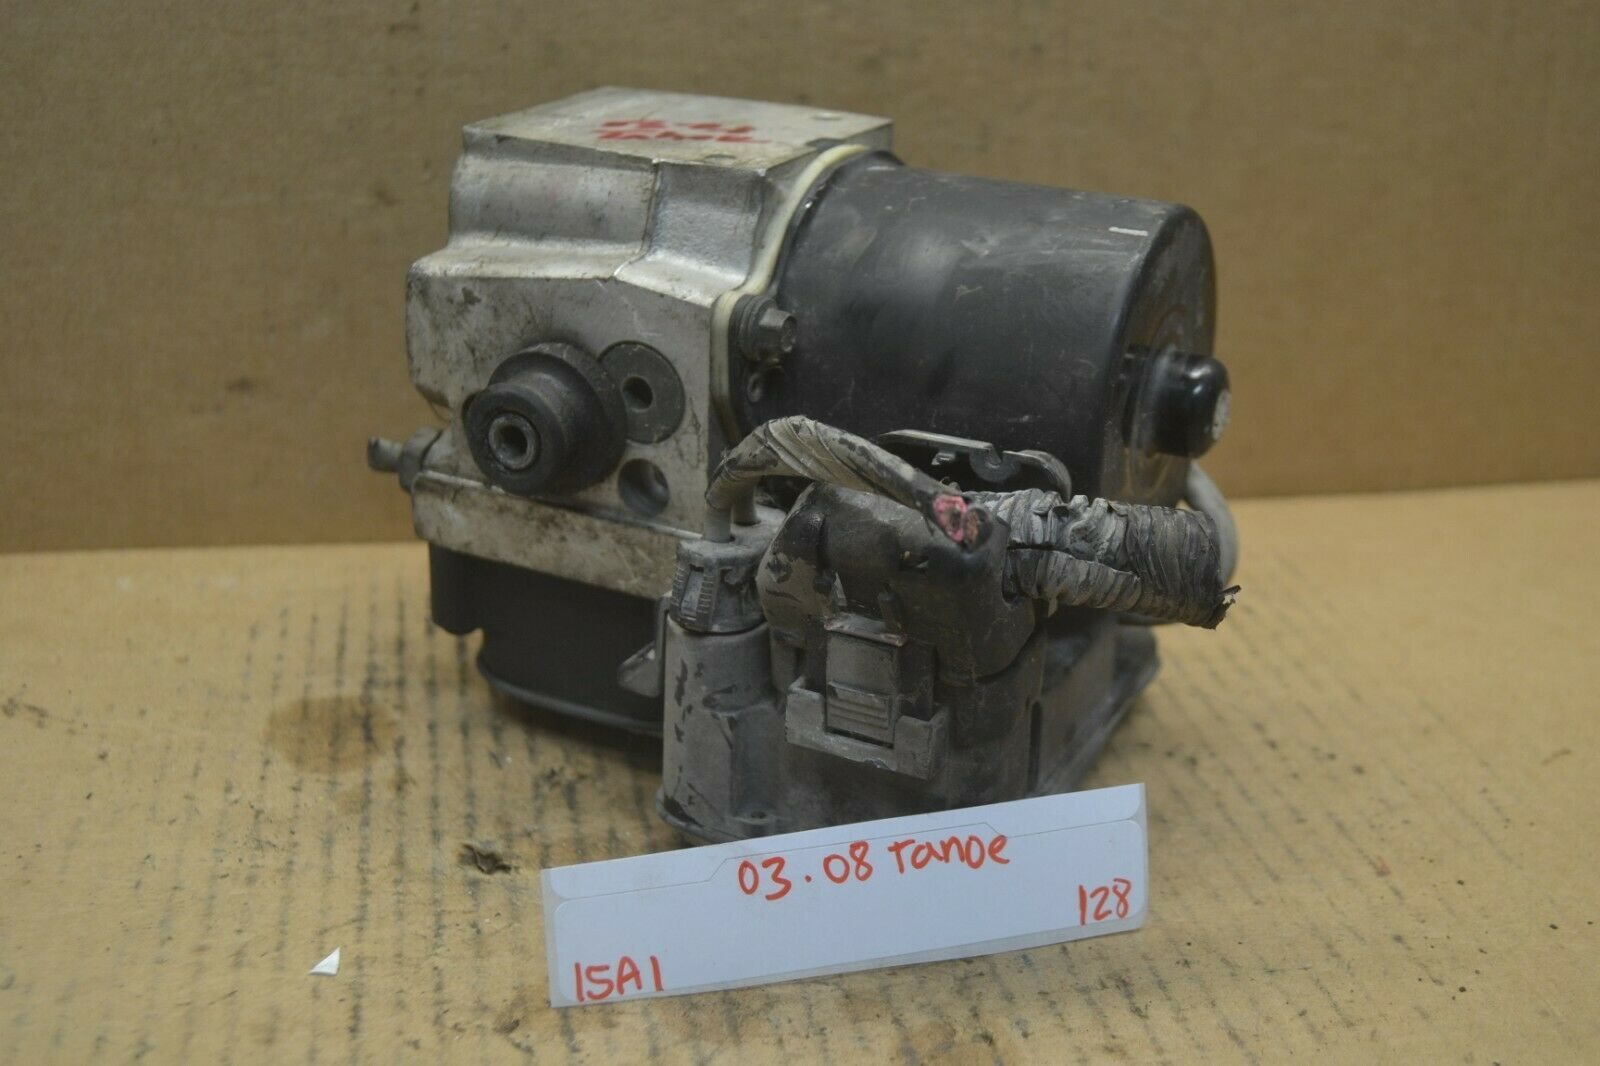 Primary image for 03-06 Chevrolet Tahoe ABS Pump Control OEM 13354736 Module 128-15a1